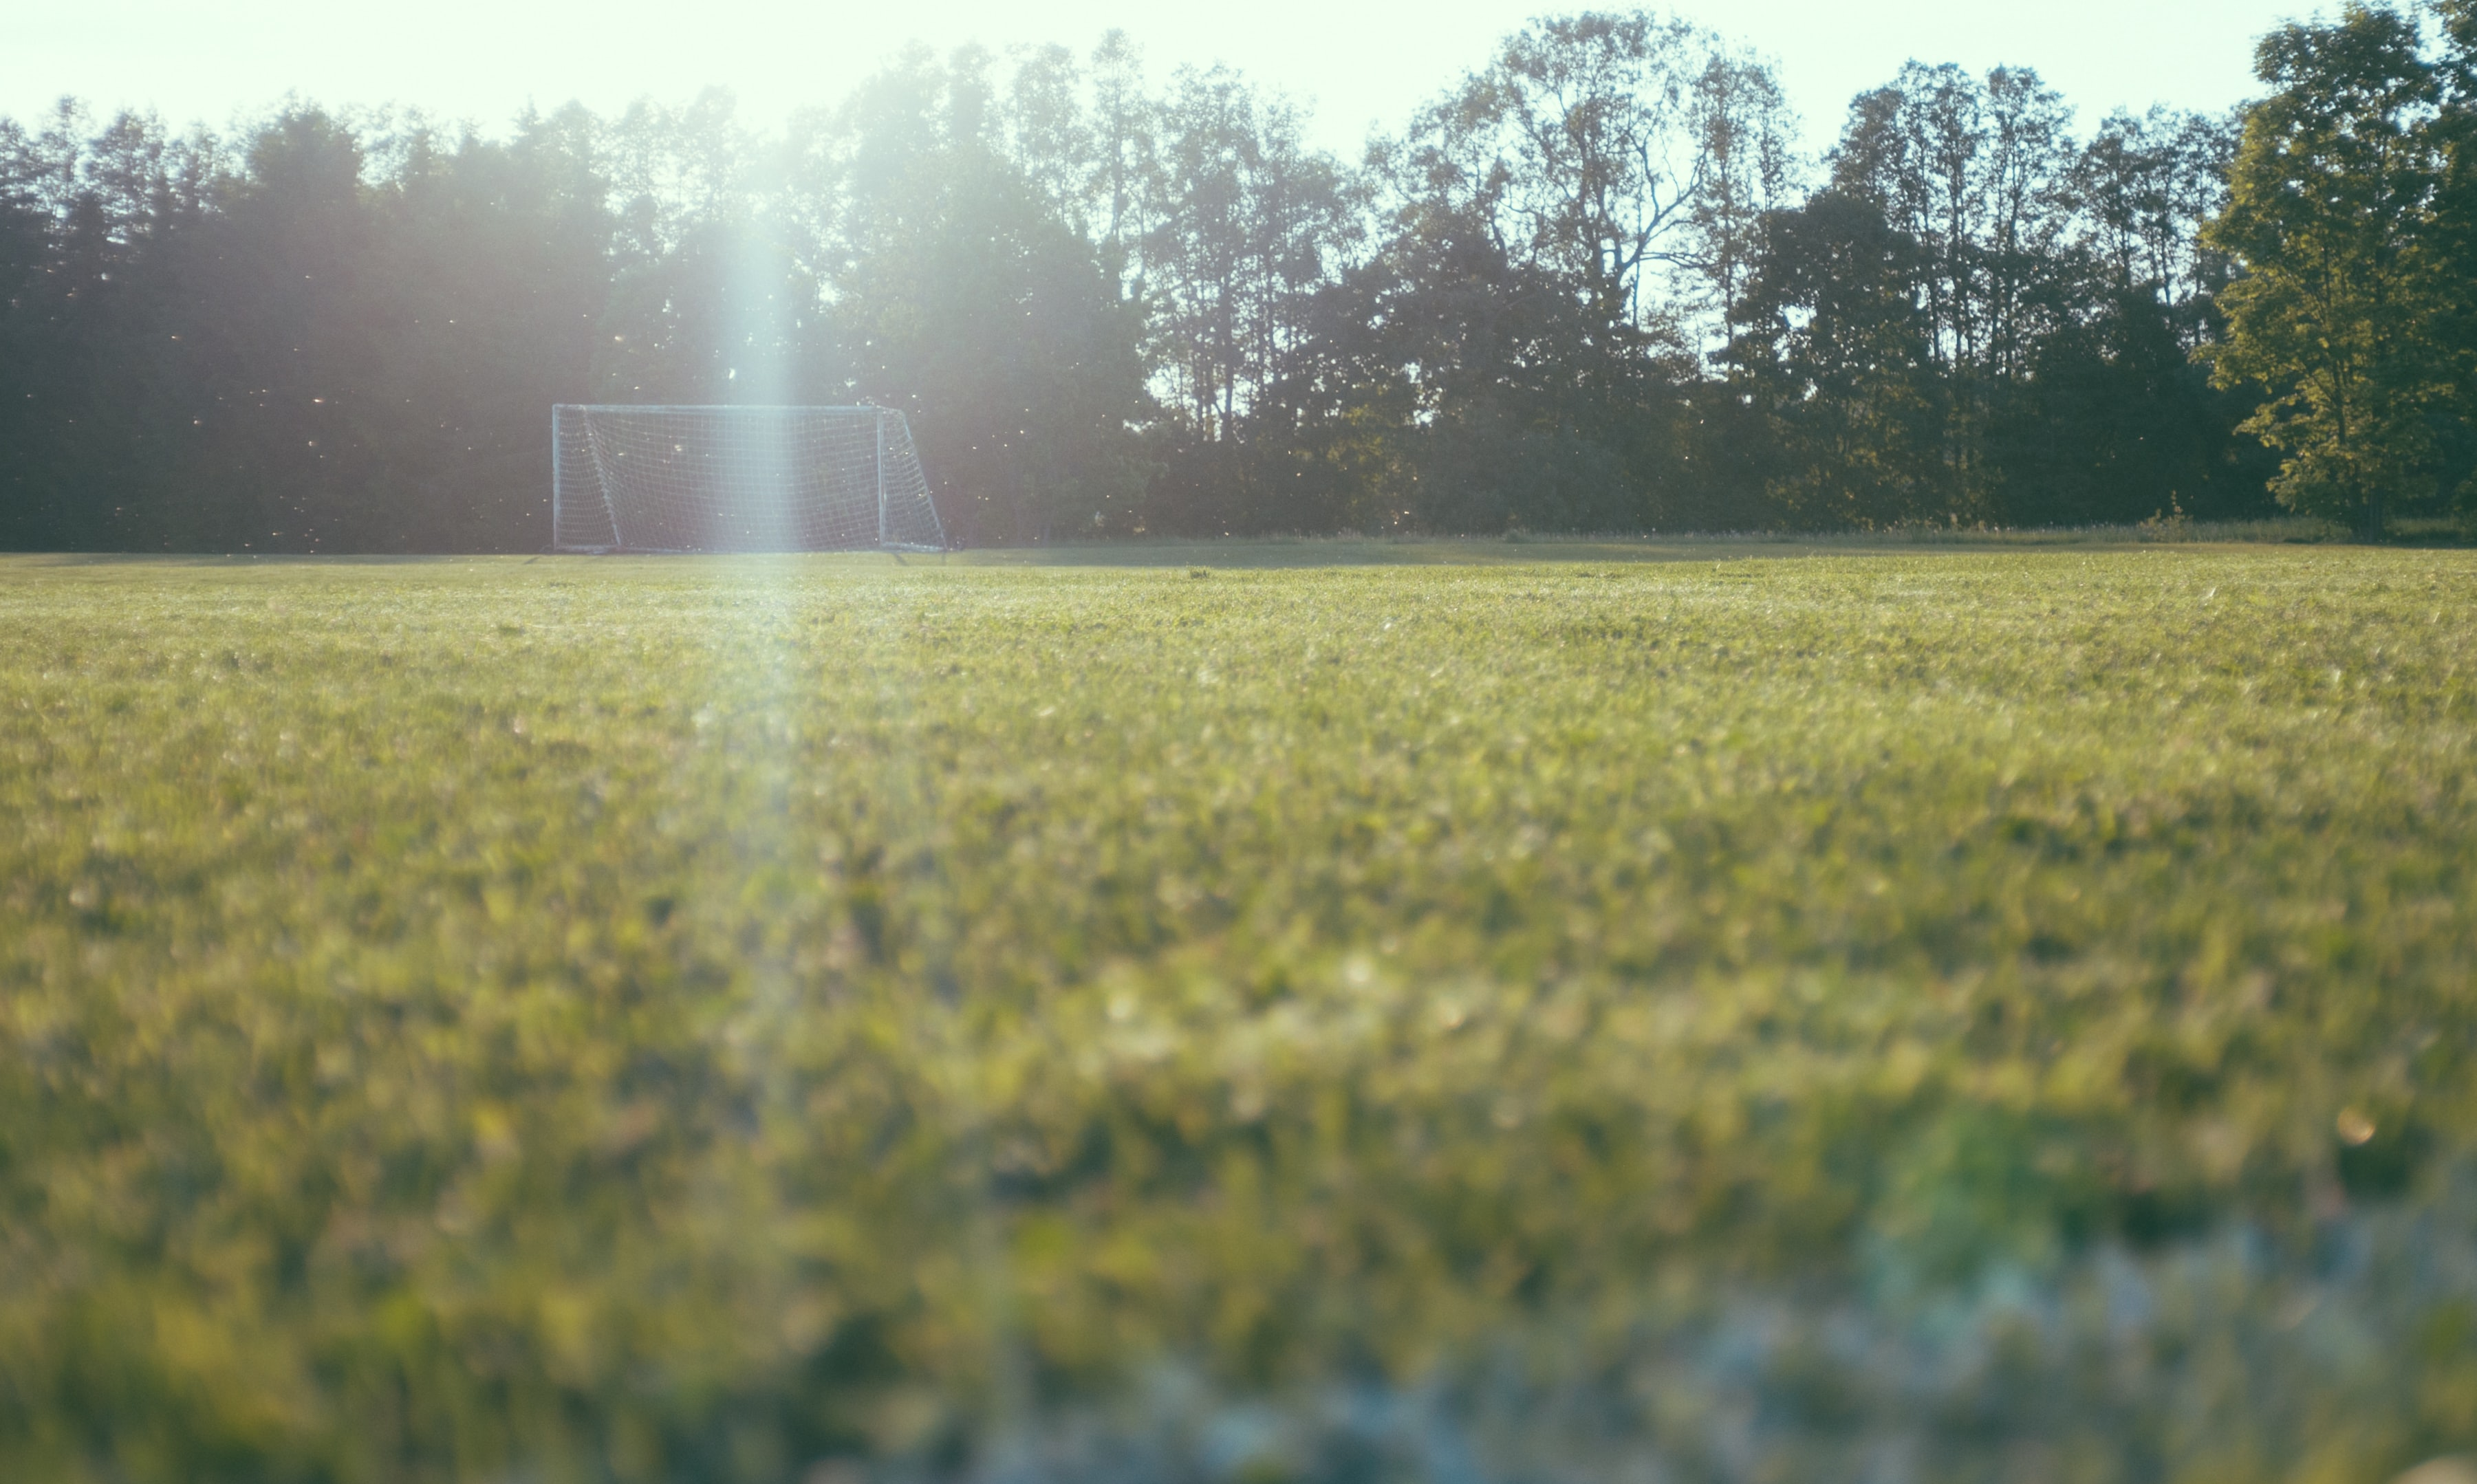 Low angle view of a green grass field with a soccer goal by the woods on a sunny day in Sweden